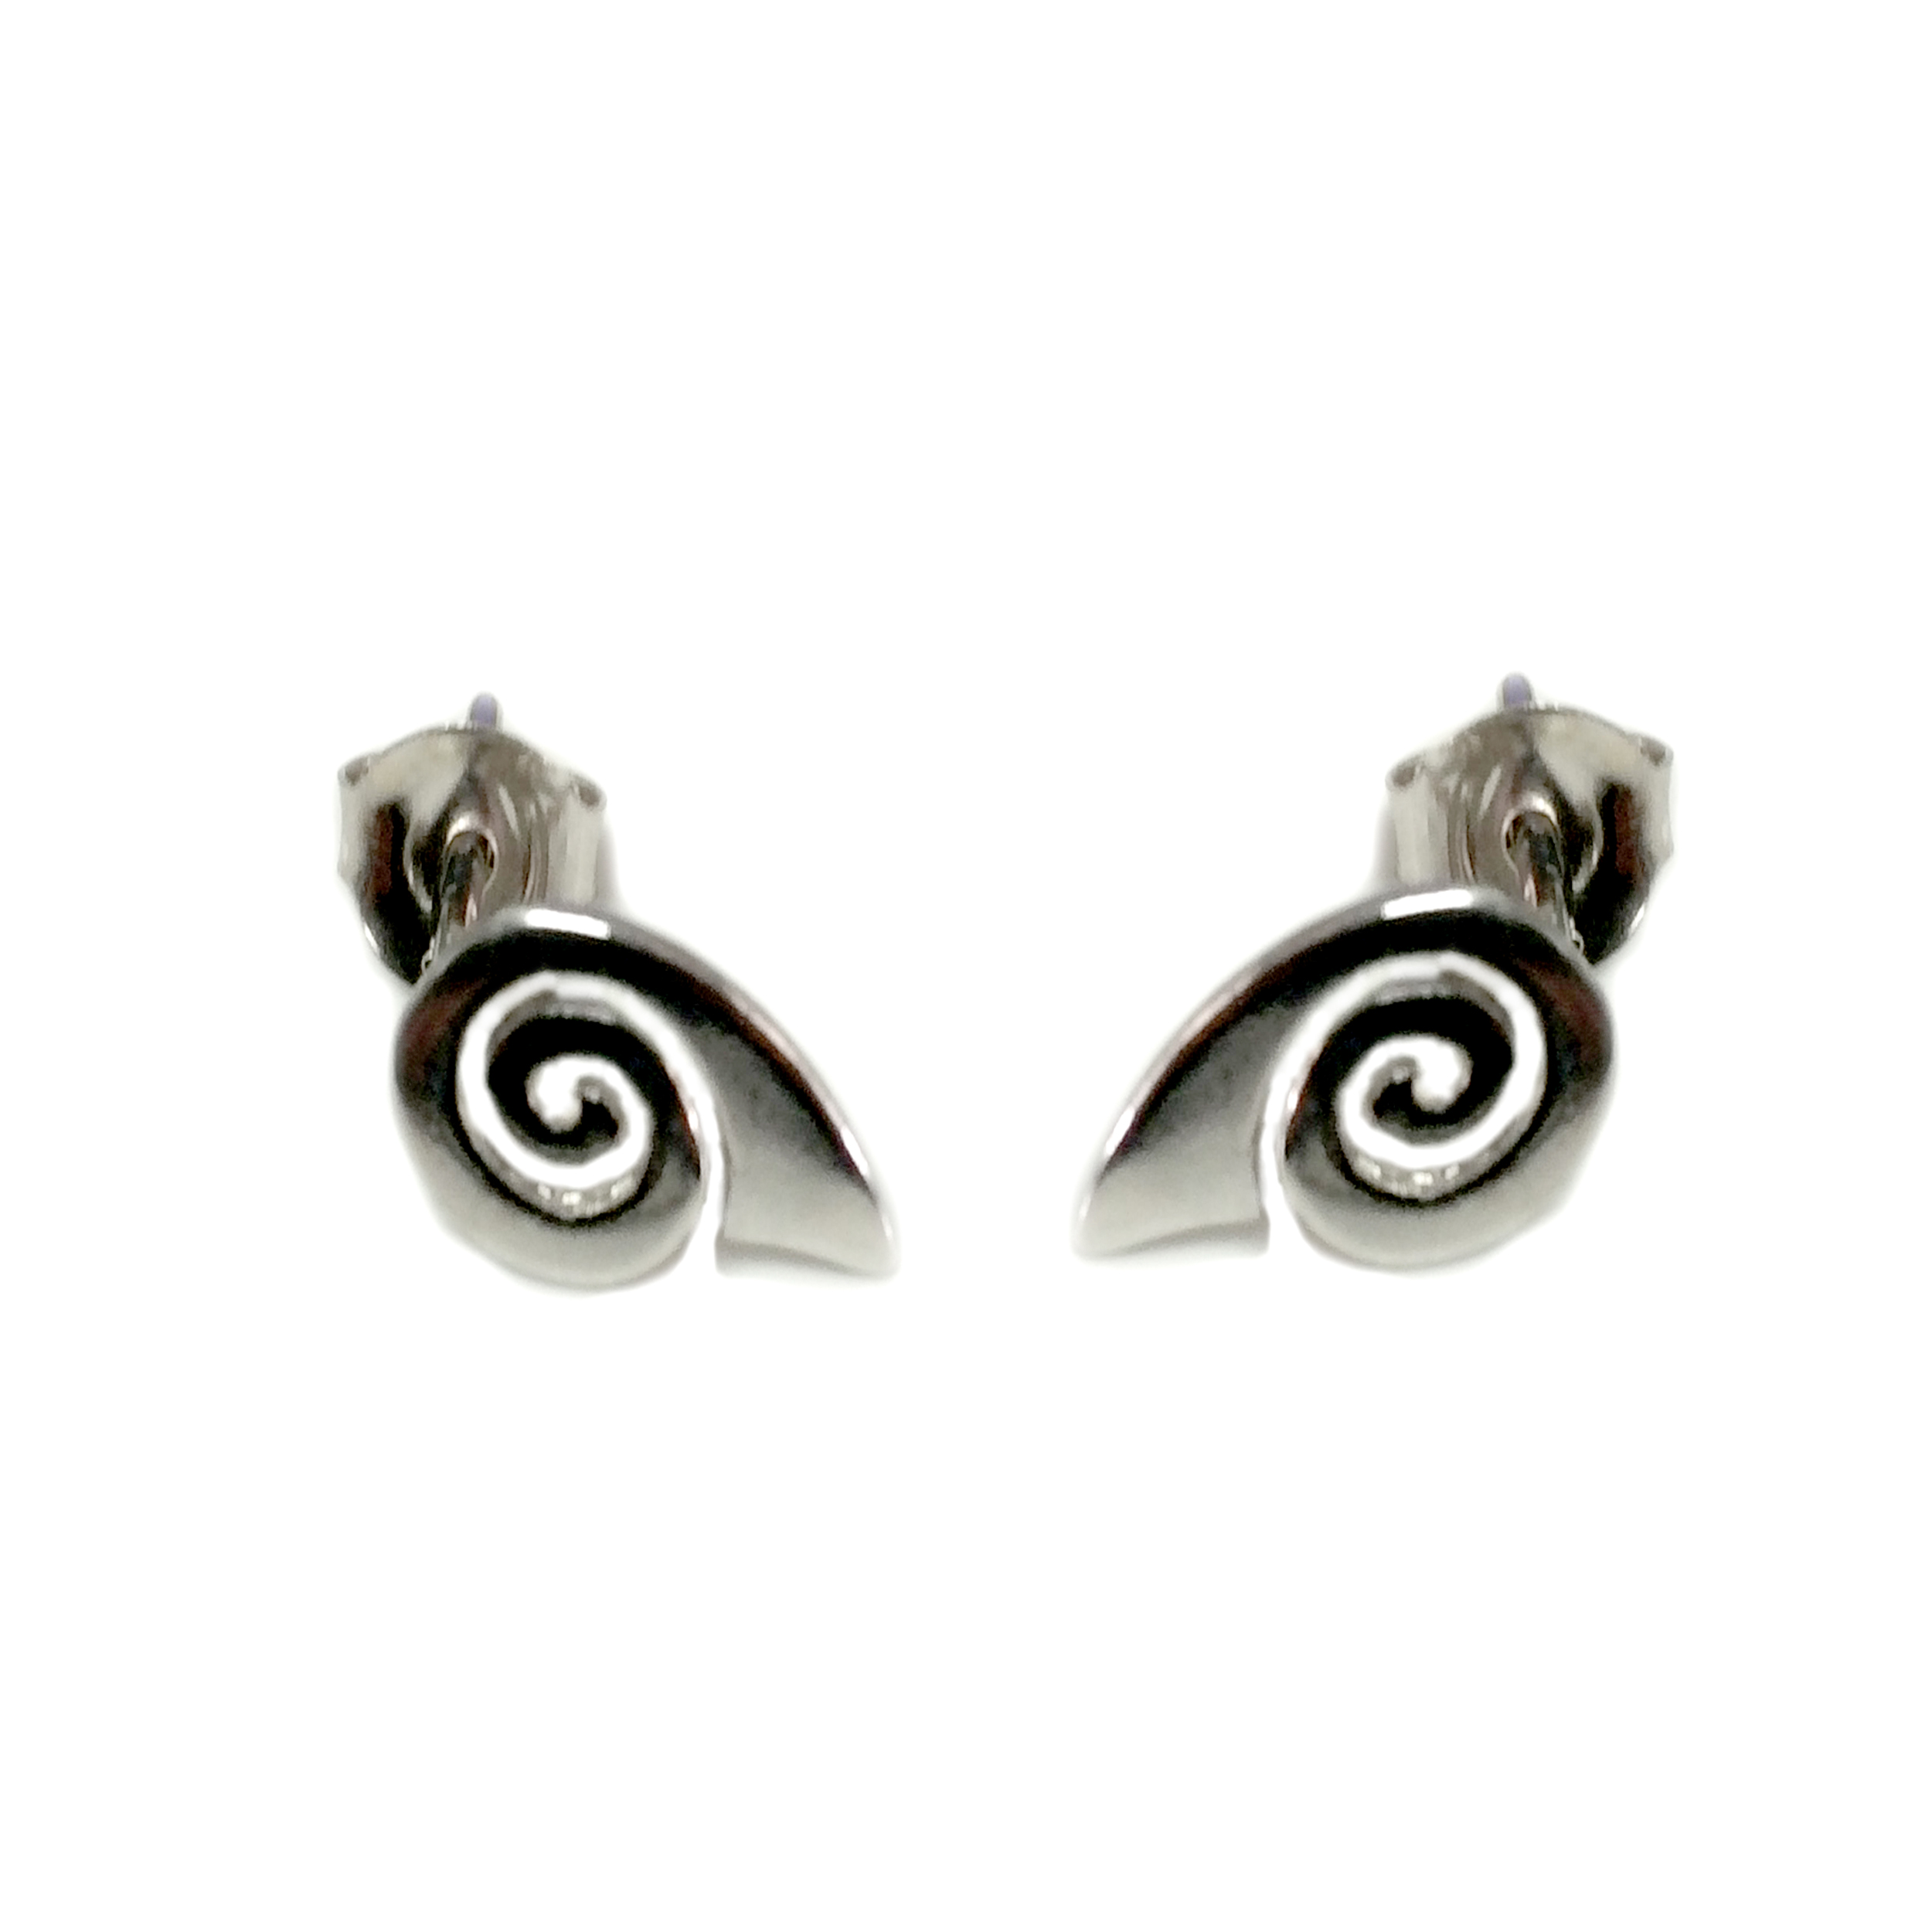 Sterling Silver Rhodium Plated Greek Spira Stud Earrings, 10mm Inspired from the of Greek ancient jewelry era, designed  and shaped into a  meander  also known as Greek spira design, makes this timeless pair of push back stud earrings a staple of a 3000 year old history. These earrings are 15mm in length